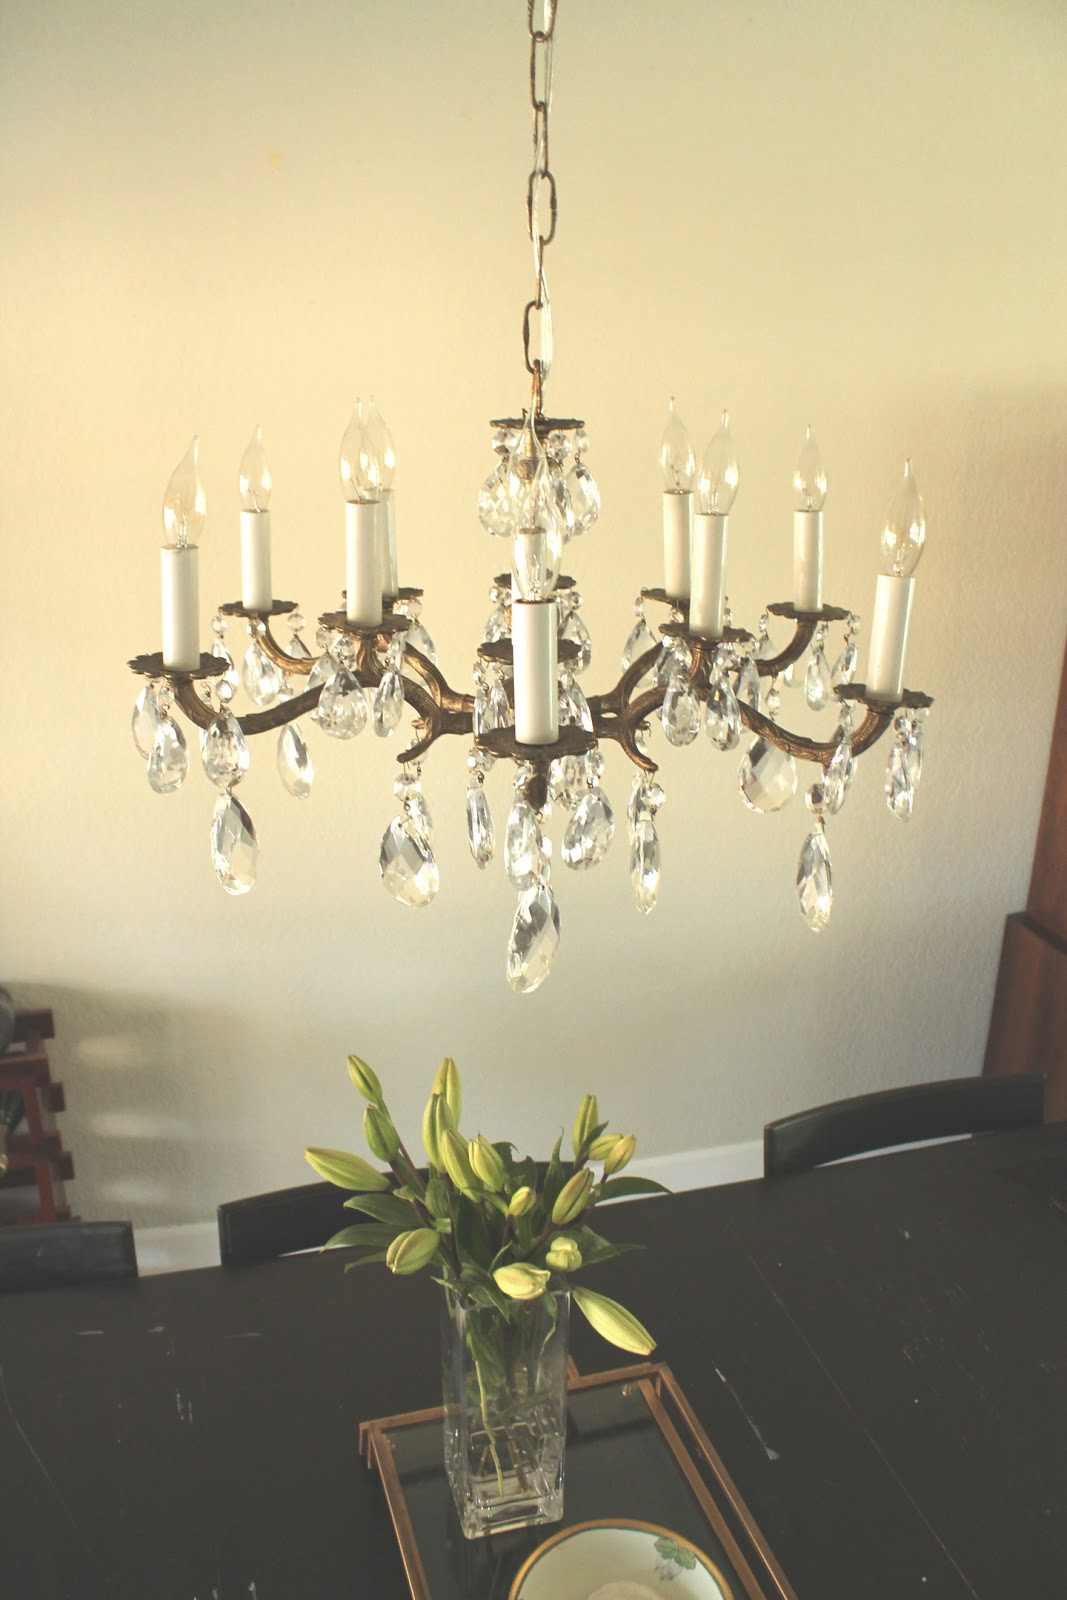 Now Let Us Begin The Install Of Vintage Brass Chandelier Here Is Original Post When I First Picked It Up Off Craigslist